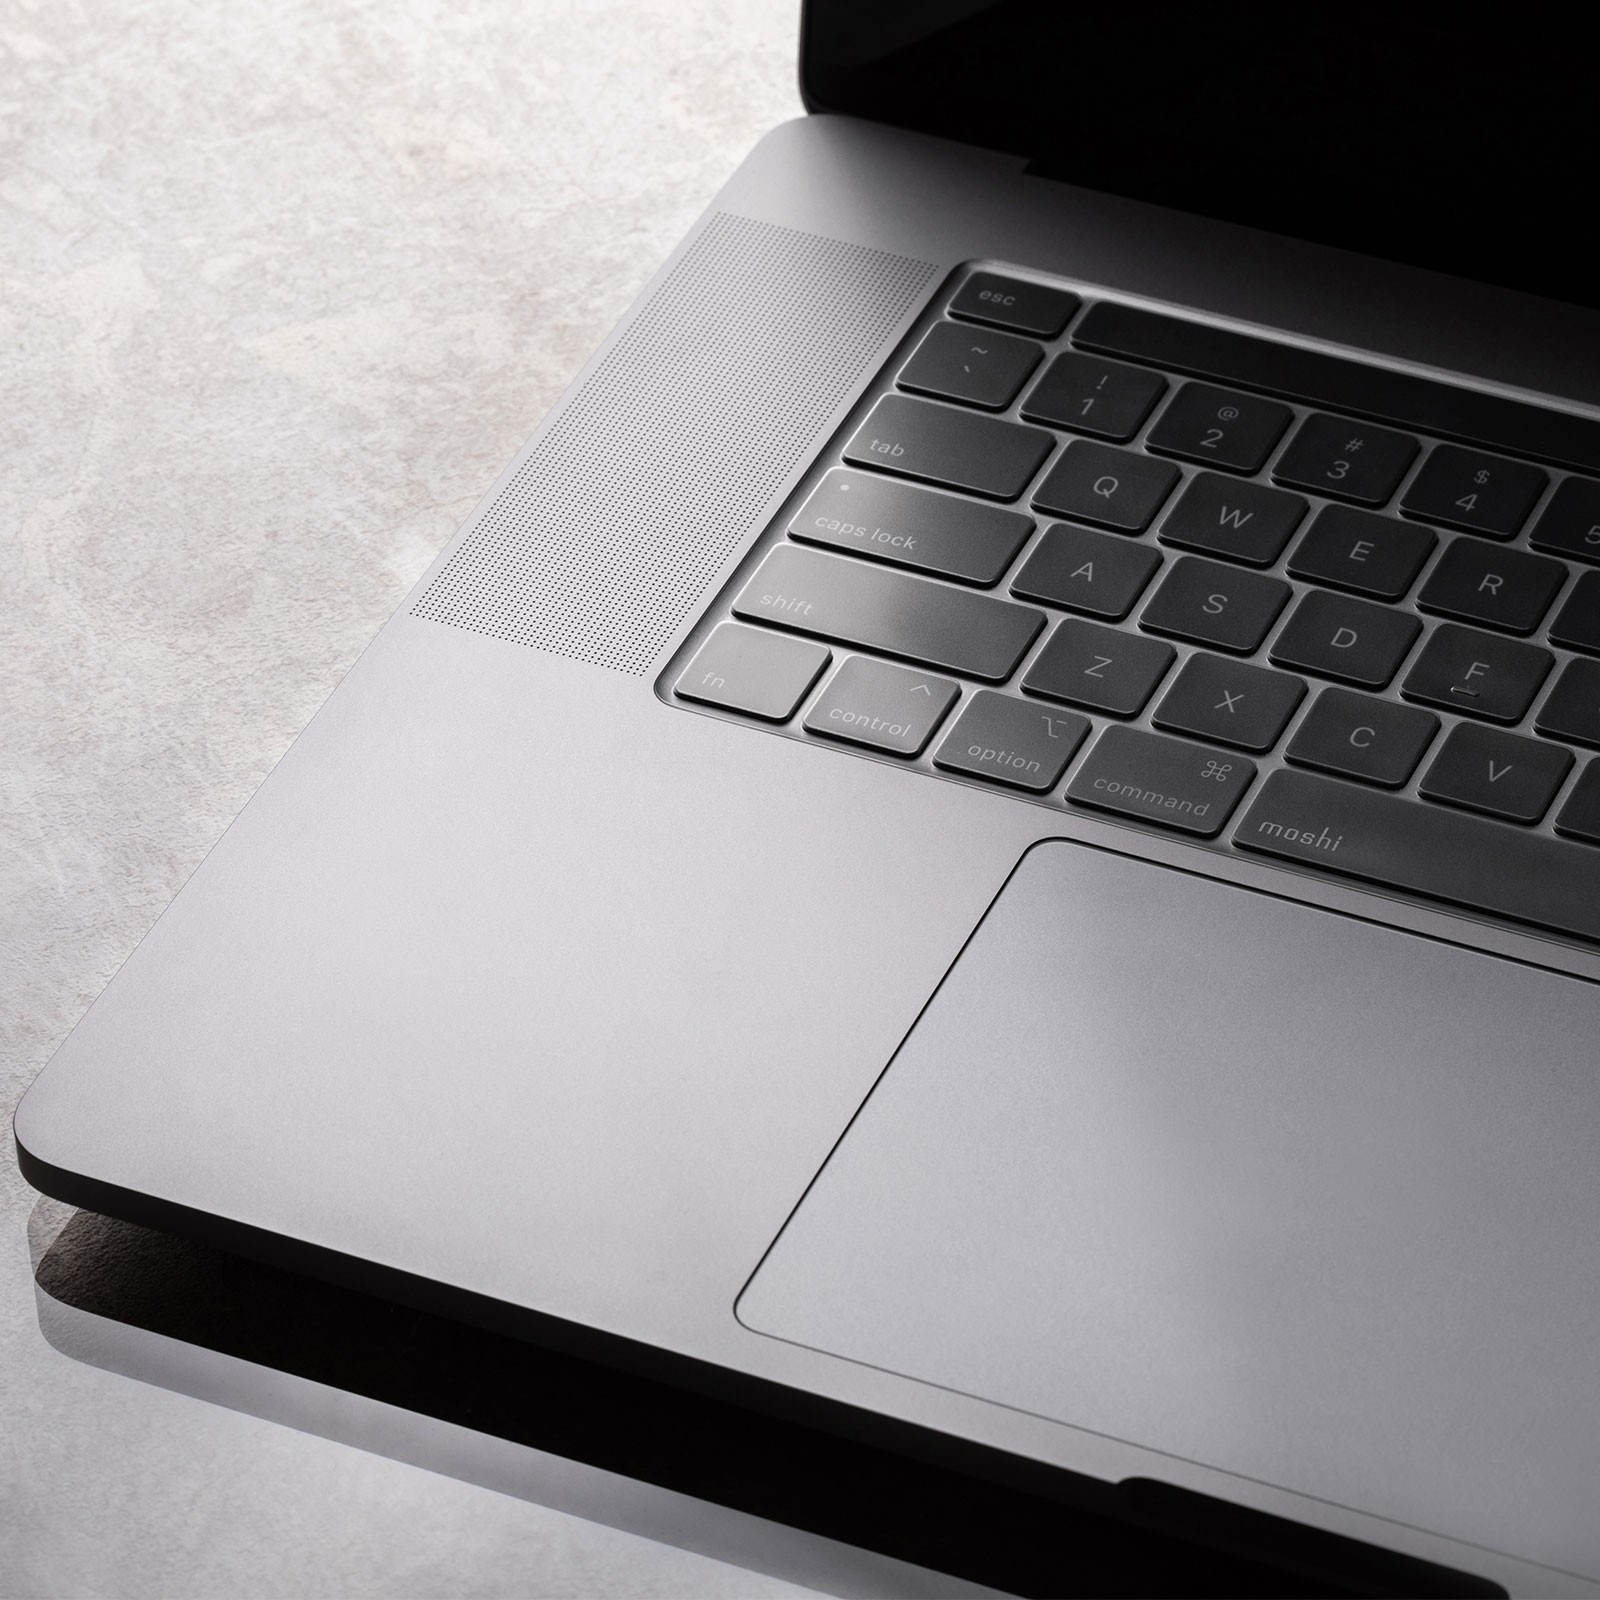 """Moshi ClearGuard for MacBook Pro 16"""" / 13"""" / M1 2020 - Keyboard Protector, 99MO021924"""